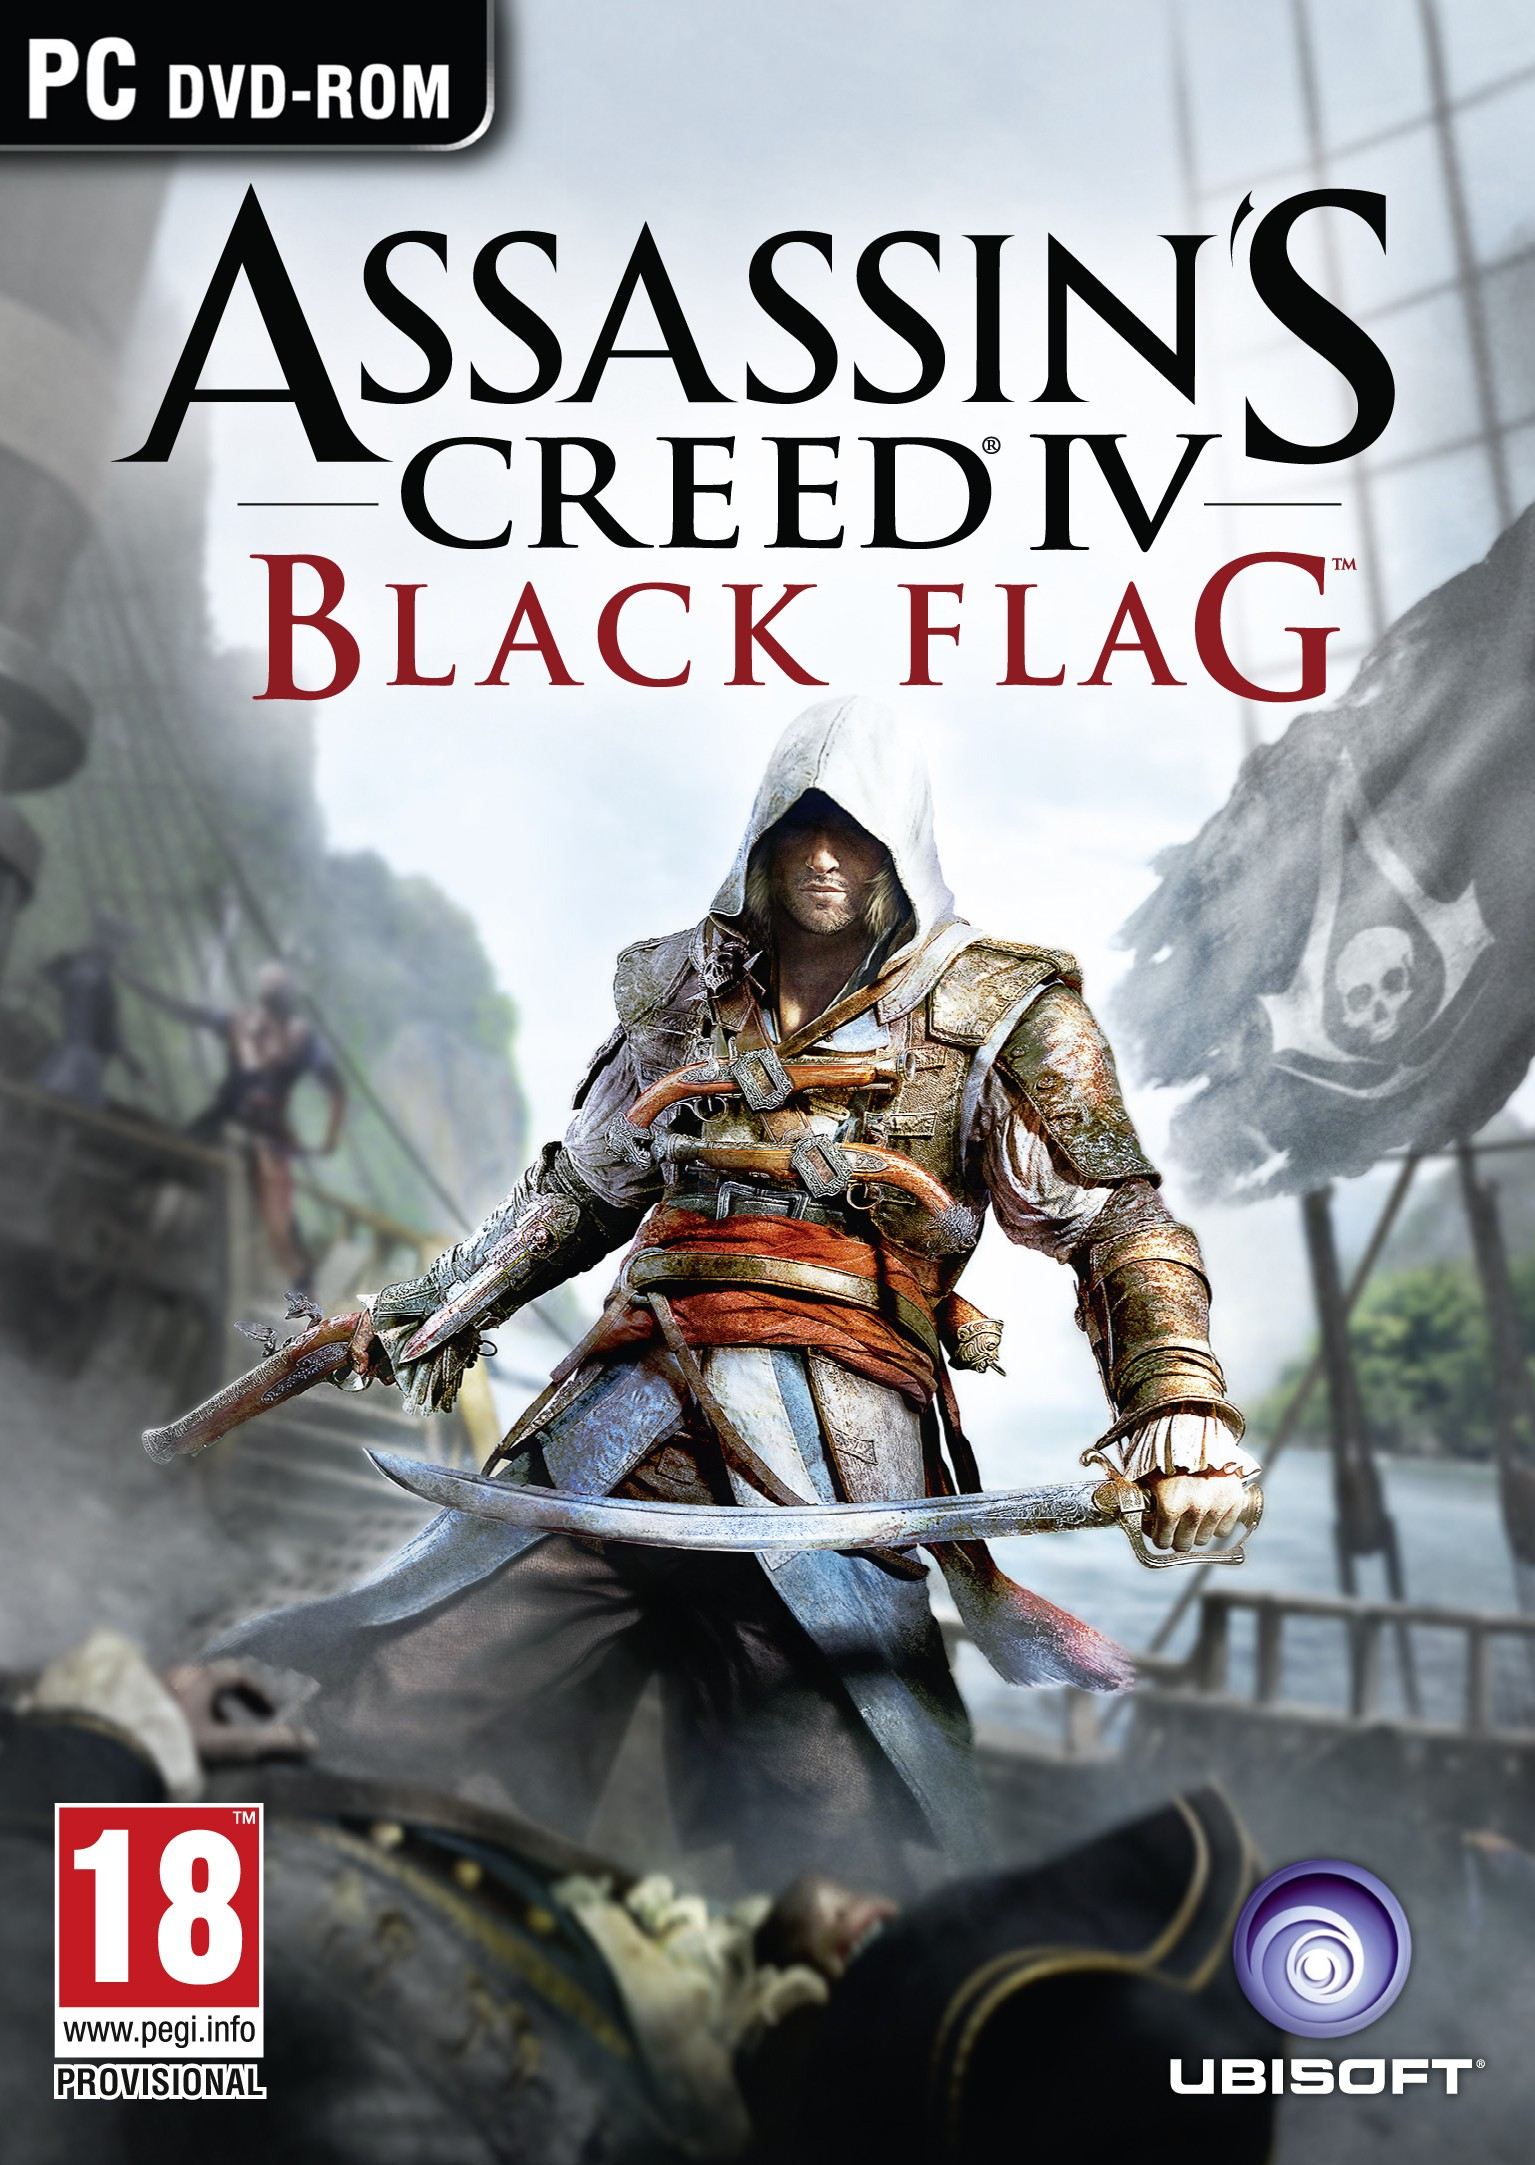 Assassins Creed 4 - Black Flag Deutsche  Texte, Untertitel, Menüs, Videos, Stimmen / Sprachausgabe Cover